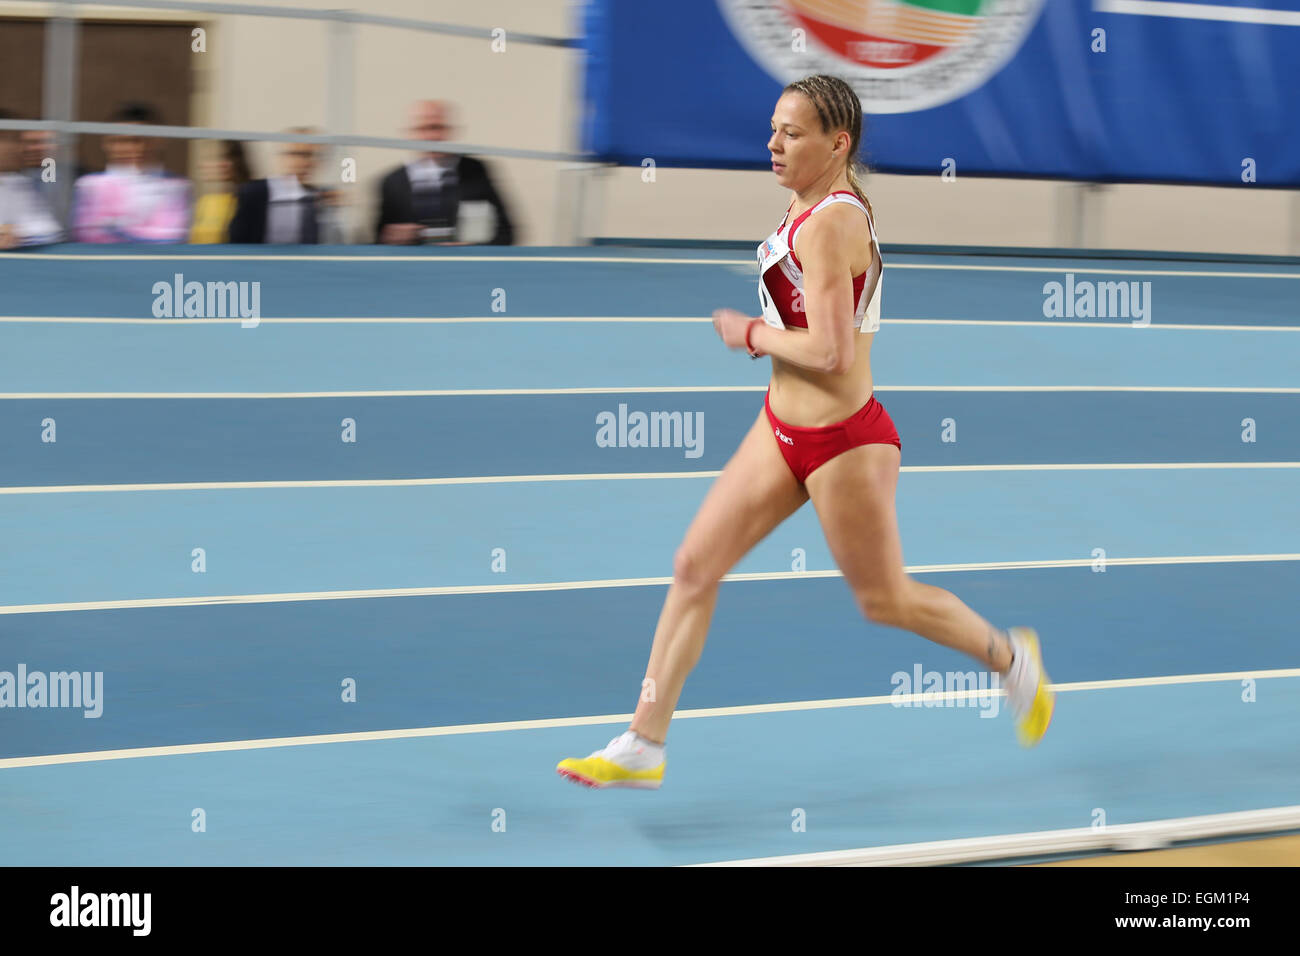 ISTANBUL, TURKEY - FEBRUARY 21, 2015: Montenegrin athlete Sladjana Perunovic running during Balkan Athletics Indoor Stock Photo